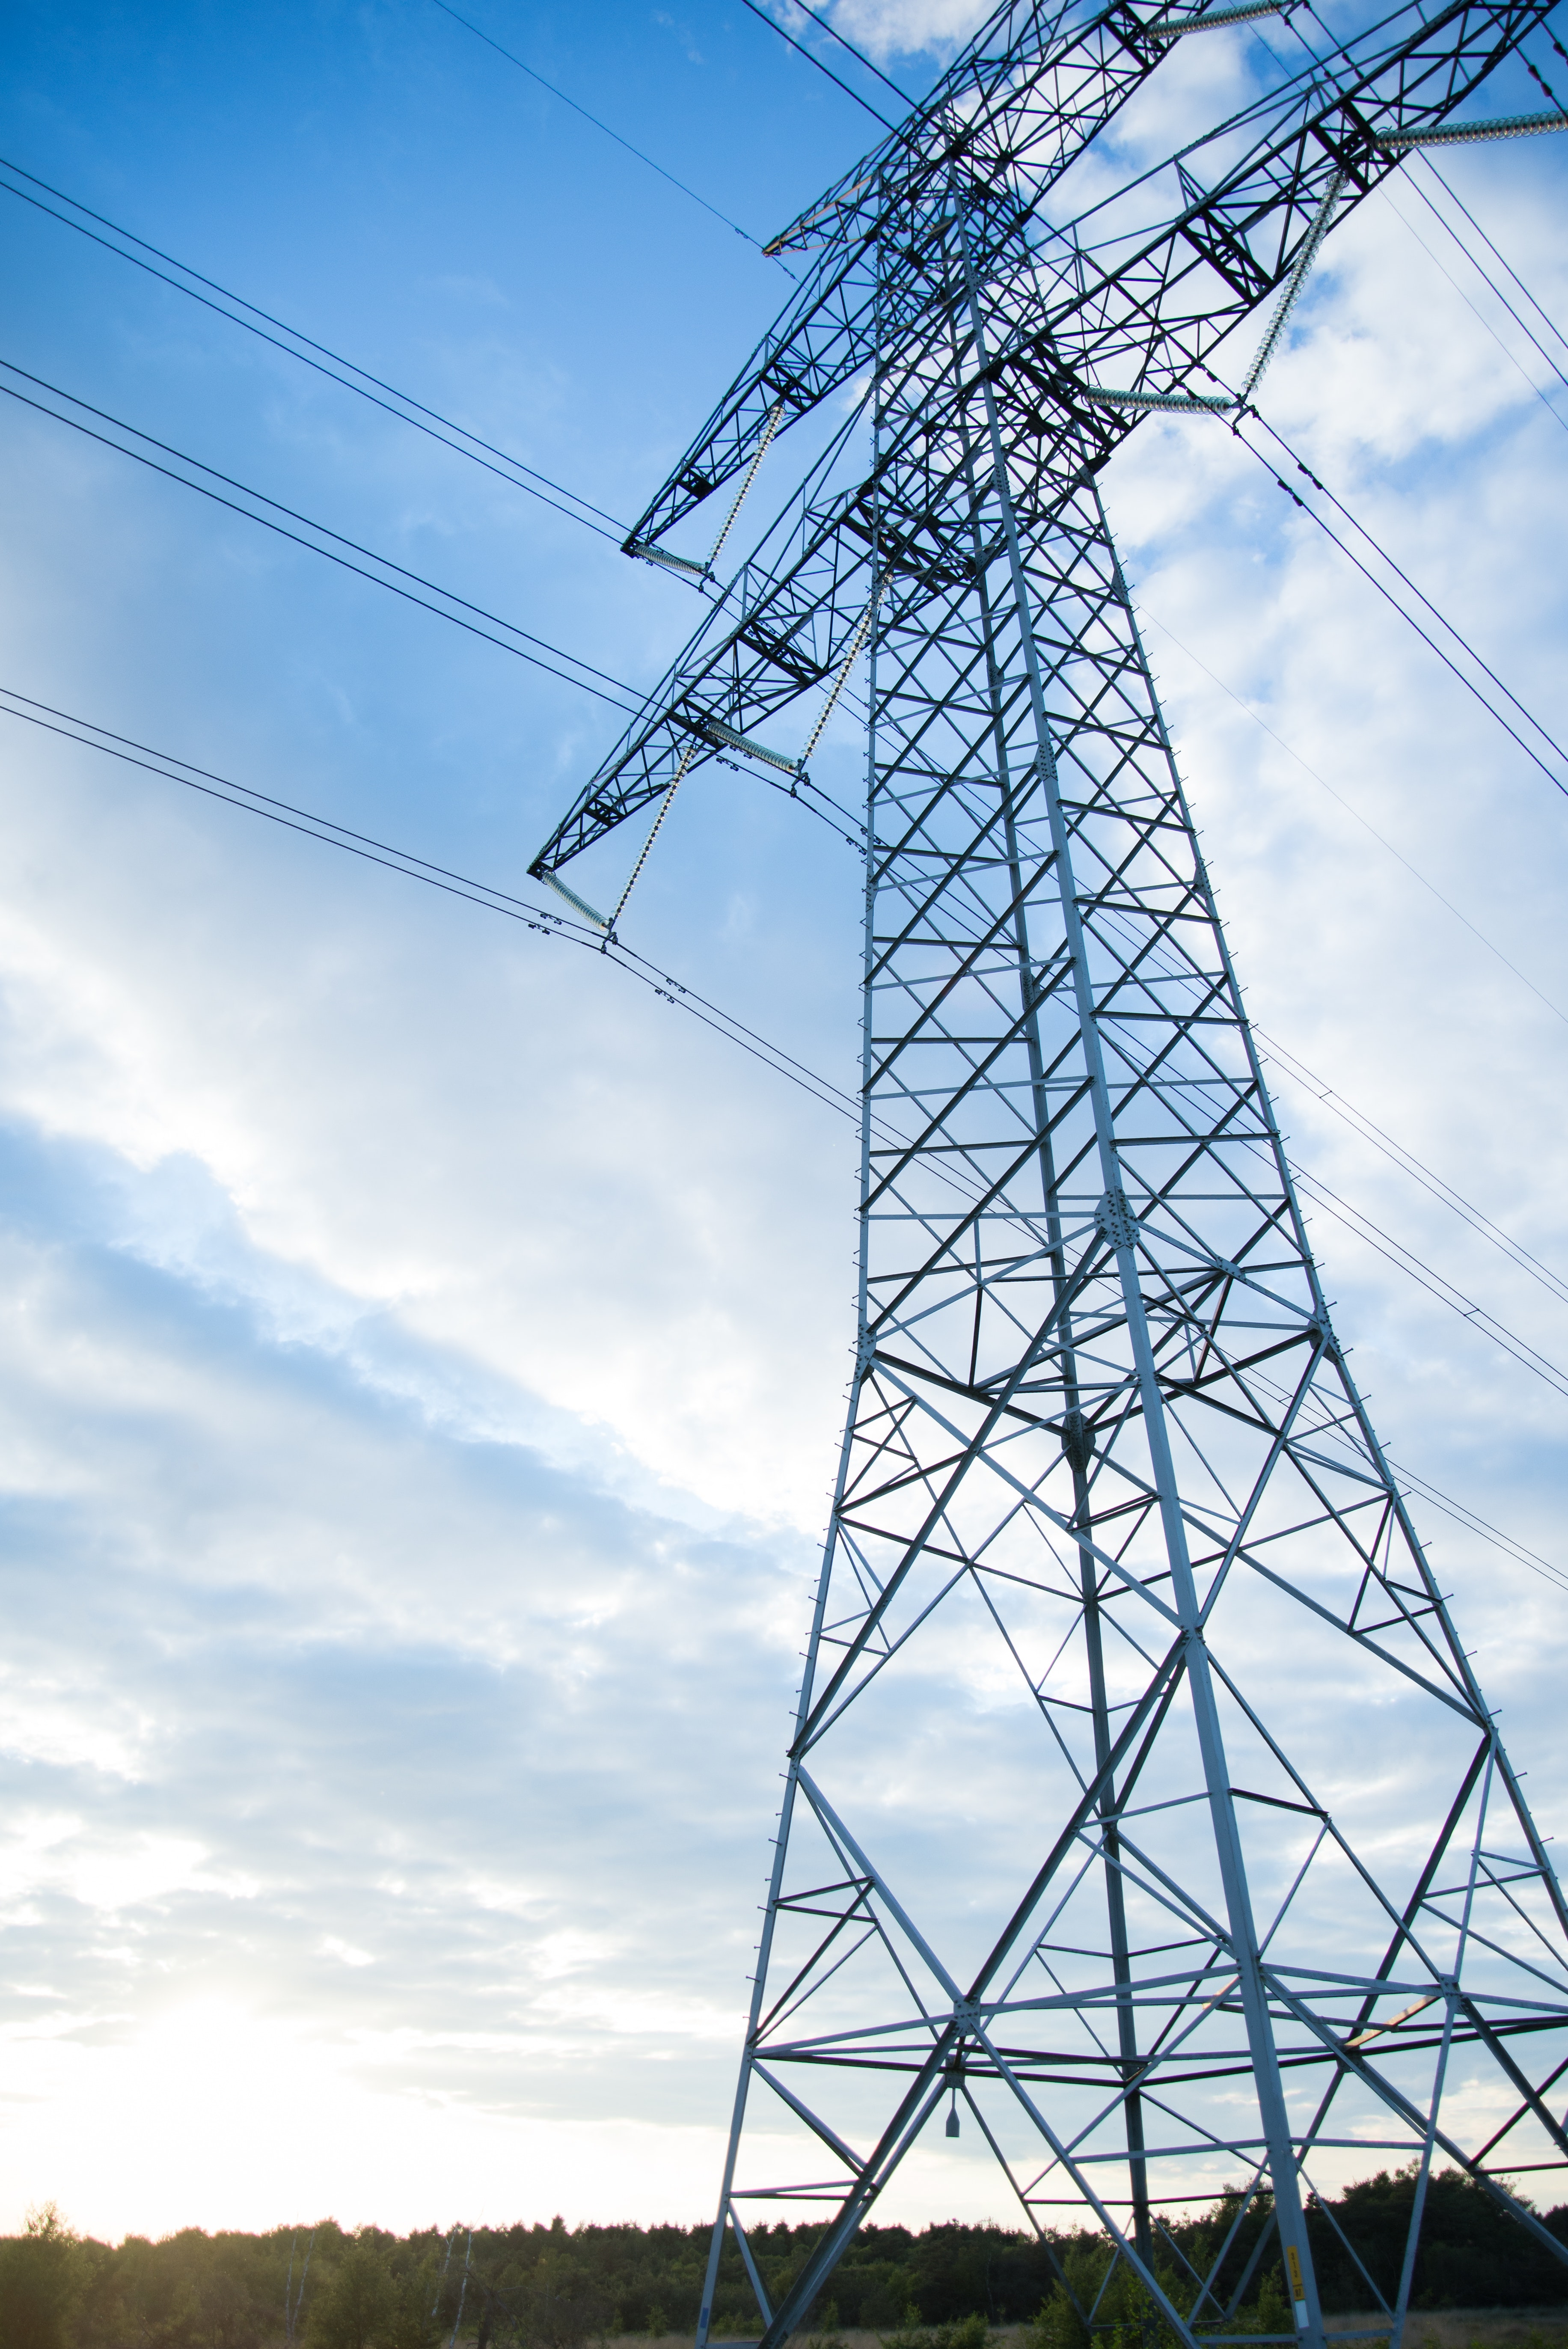 Gray Transmission Line Under Blue Sky at Daytime, Cable, Power supply, Voltage, Volt, HQ Photo